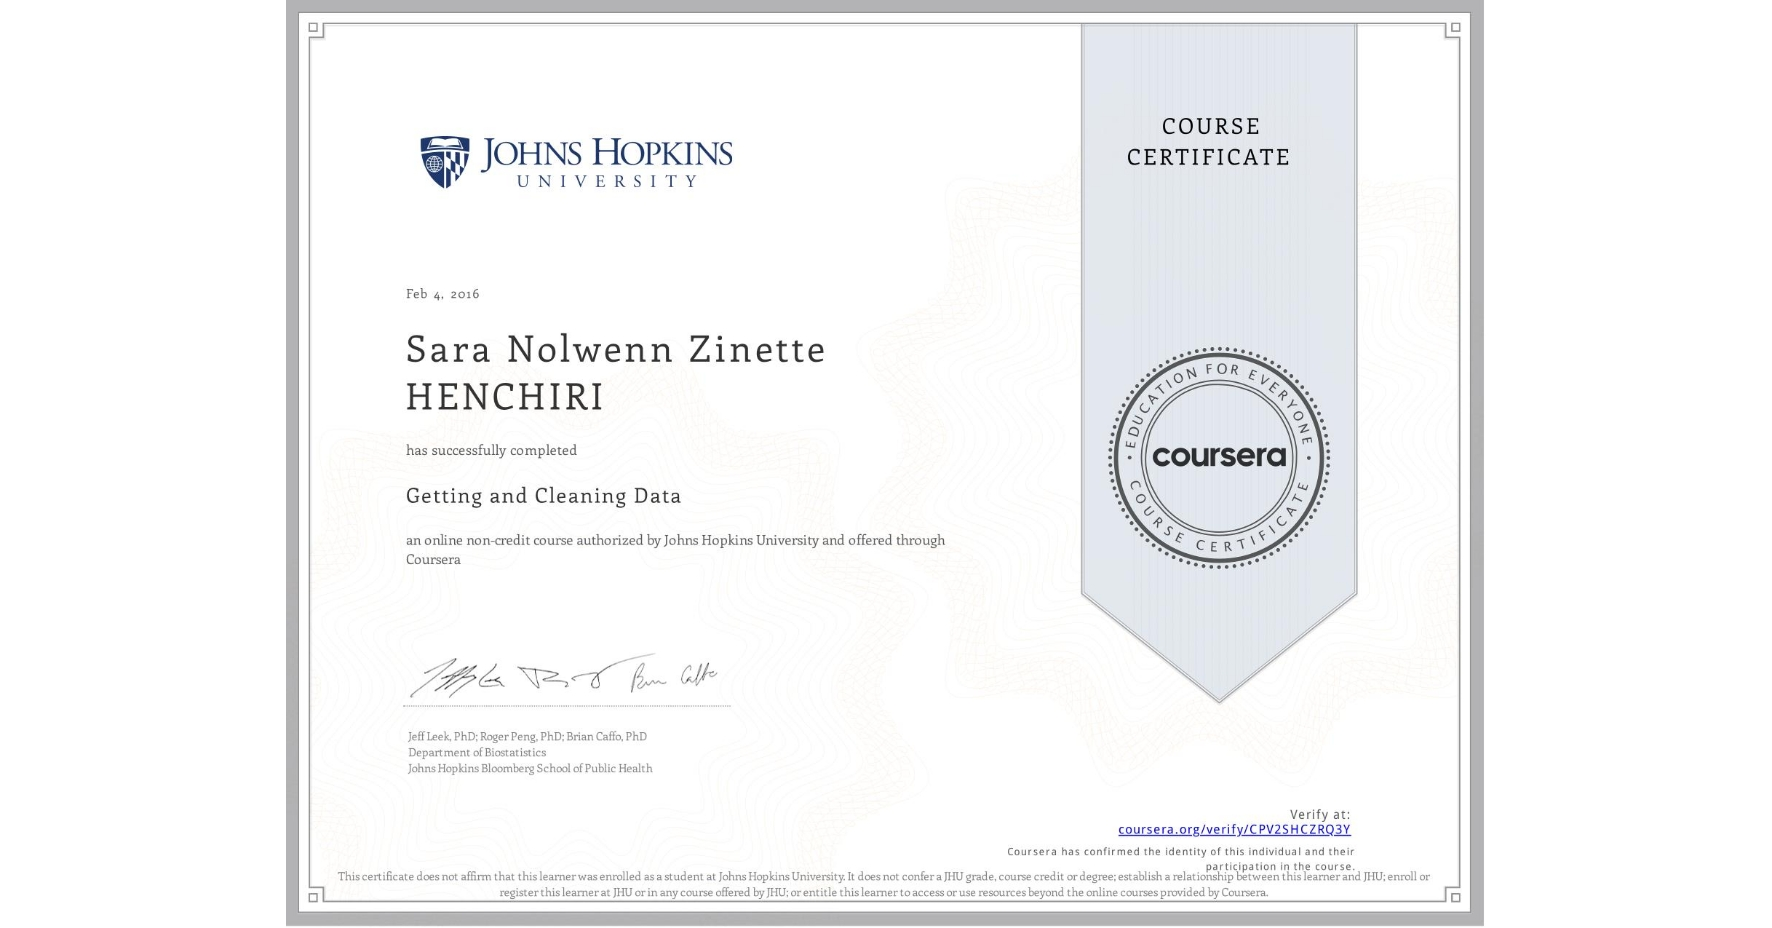 View certificate for Sara Nolwenn Zinette HENCHIRI, Getting and Cleaning Data, an online non-credit course authorized by Johns Hopkins University and offered through Coursera